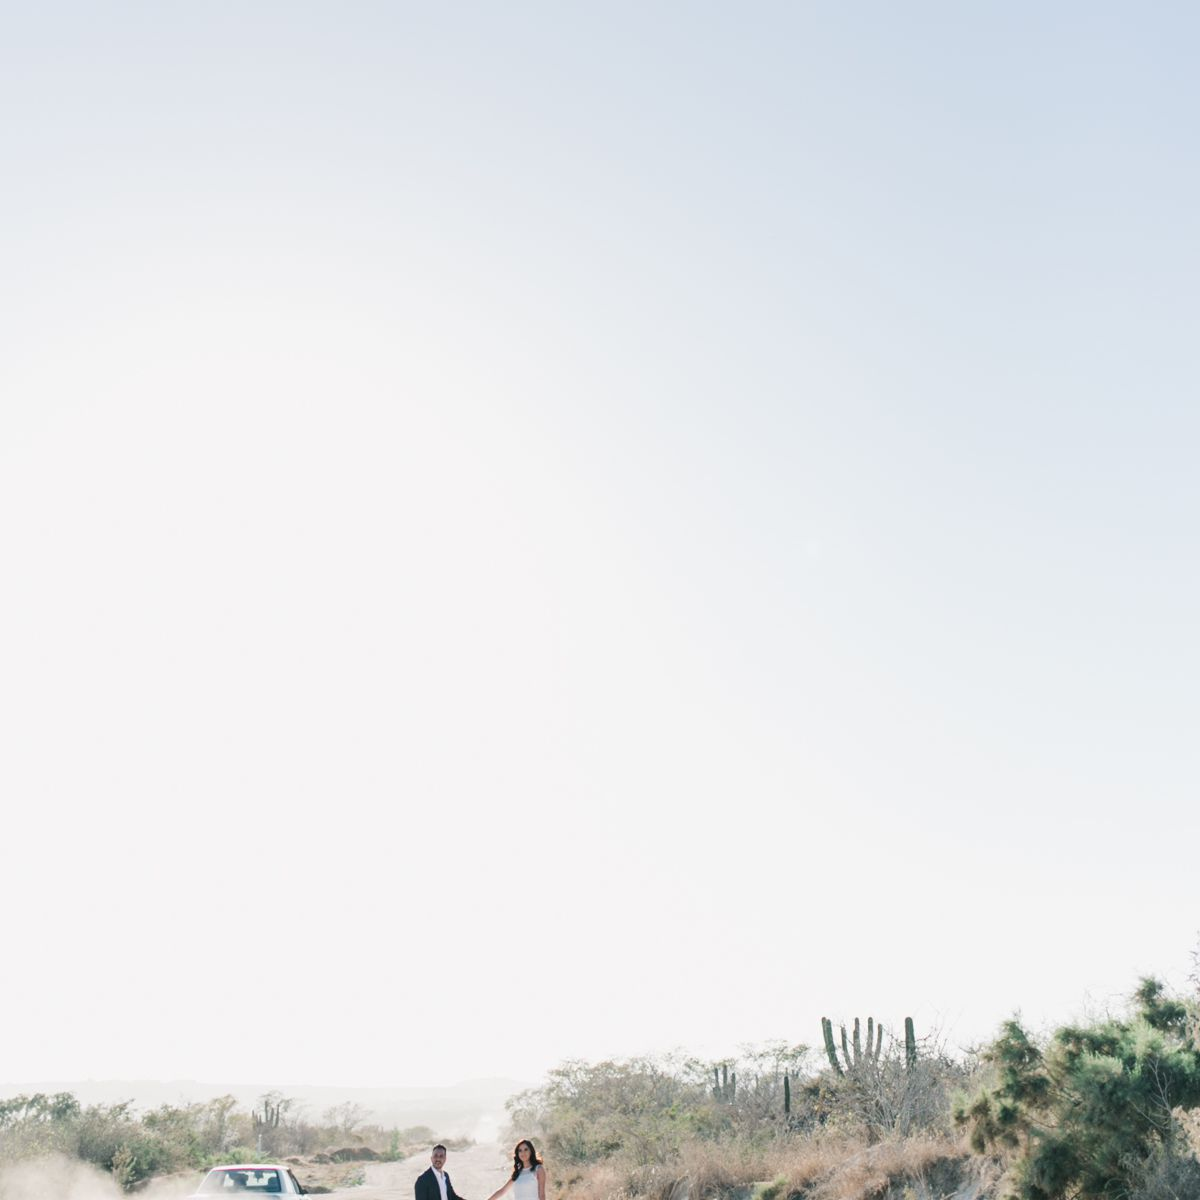 Couple with car in desert